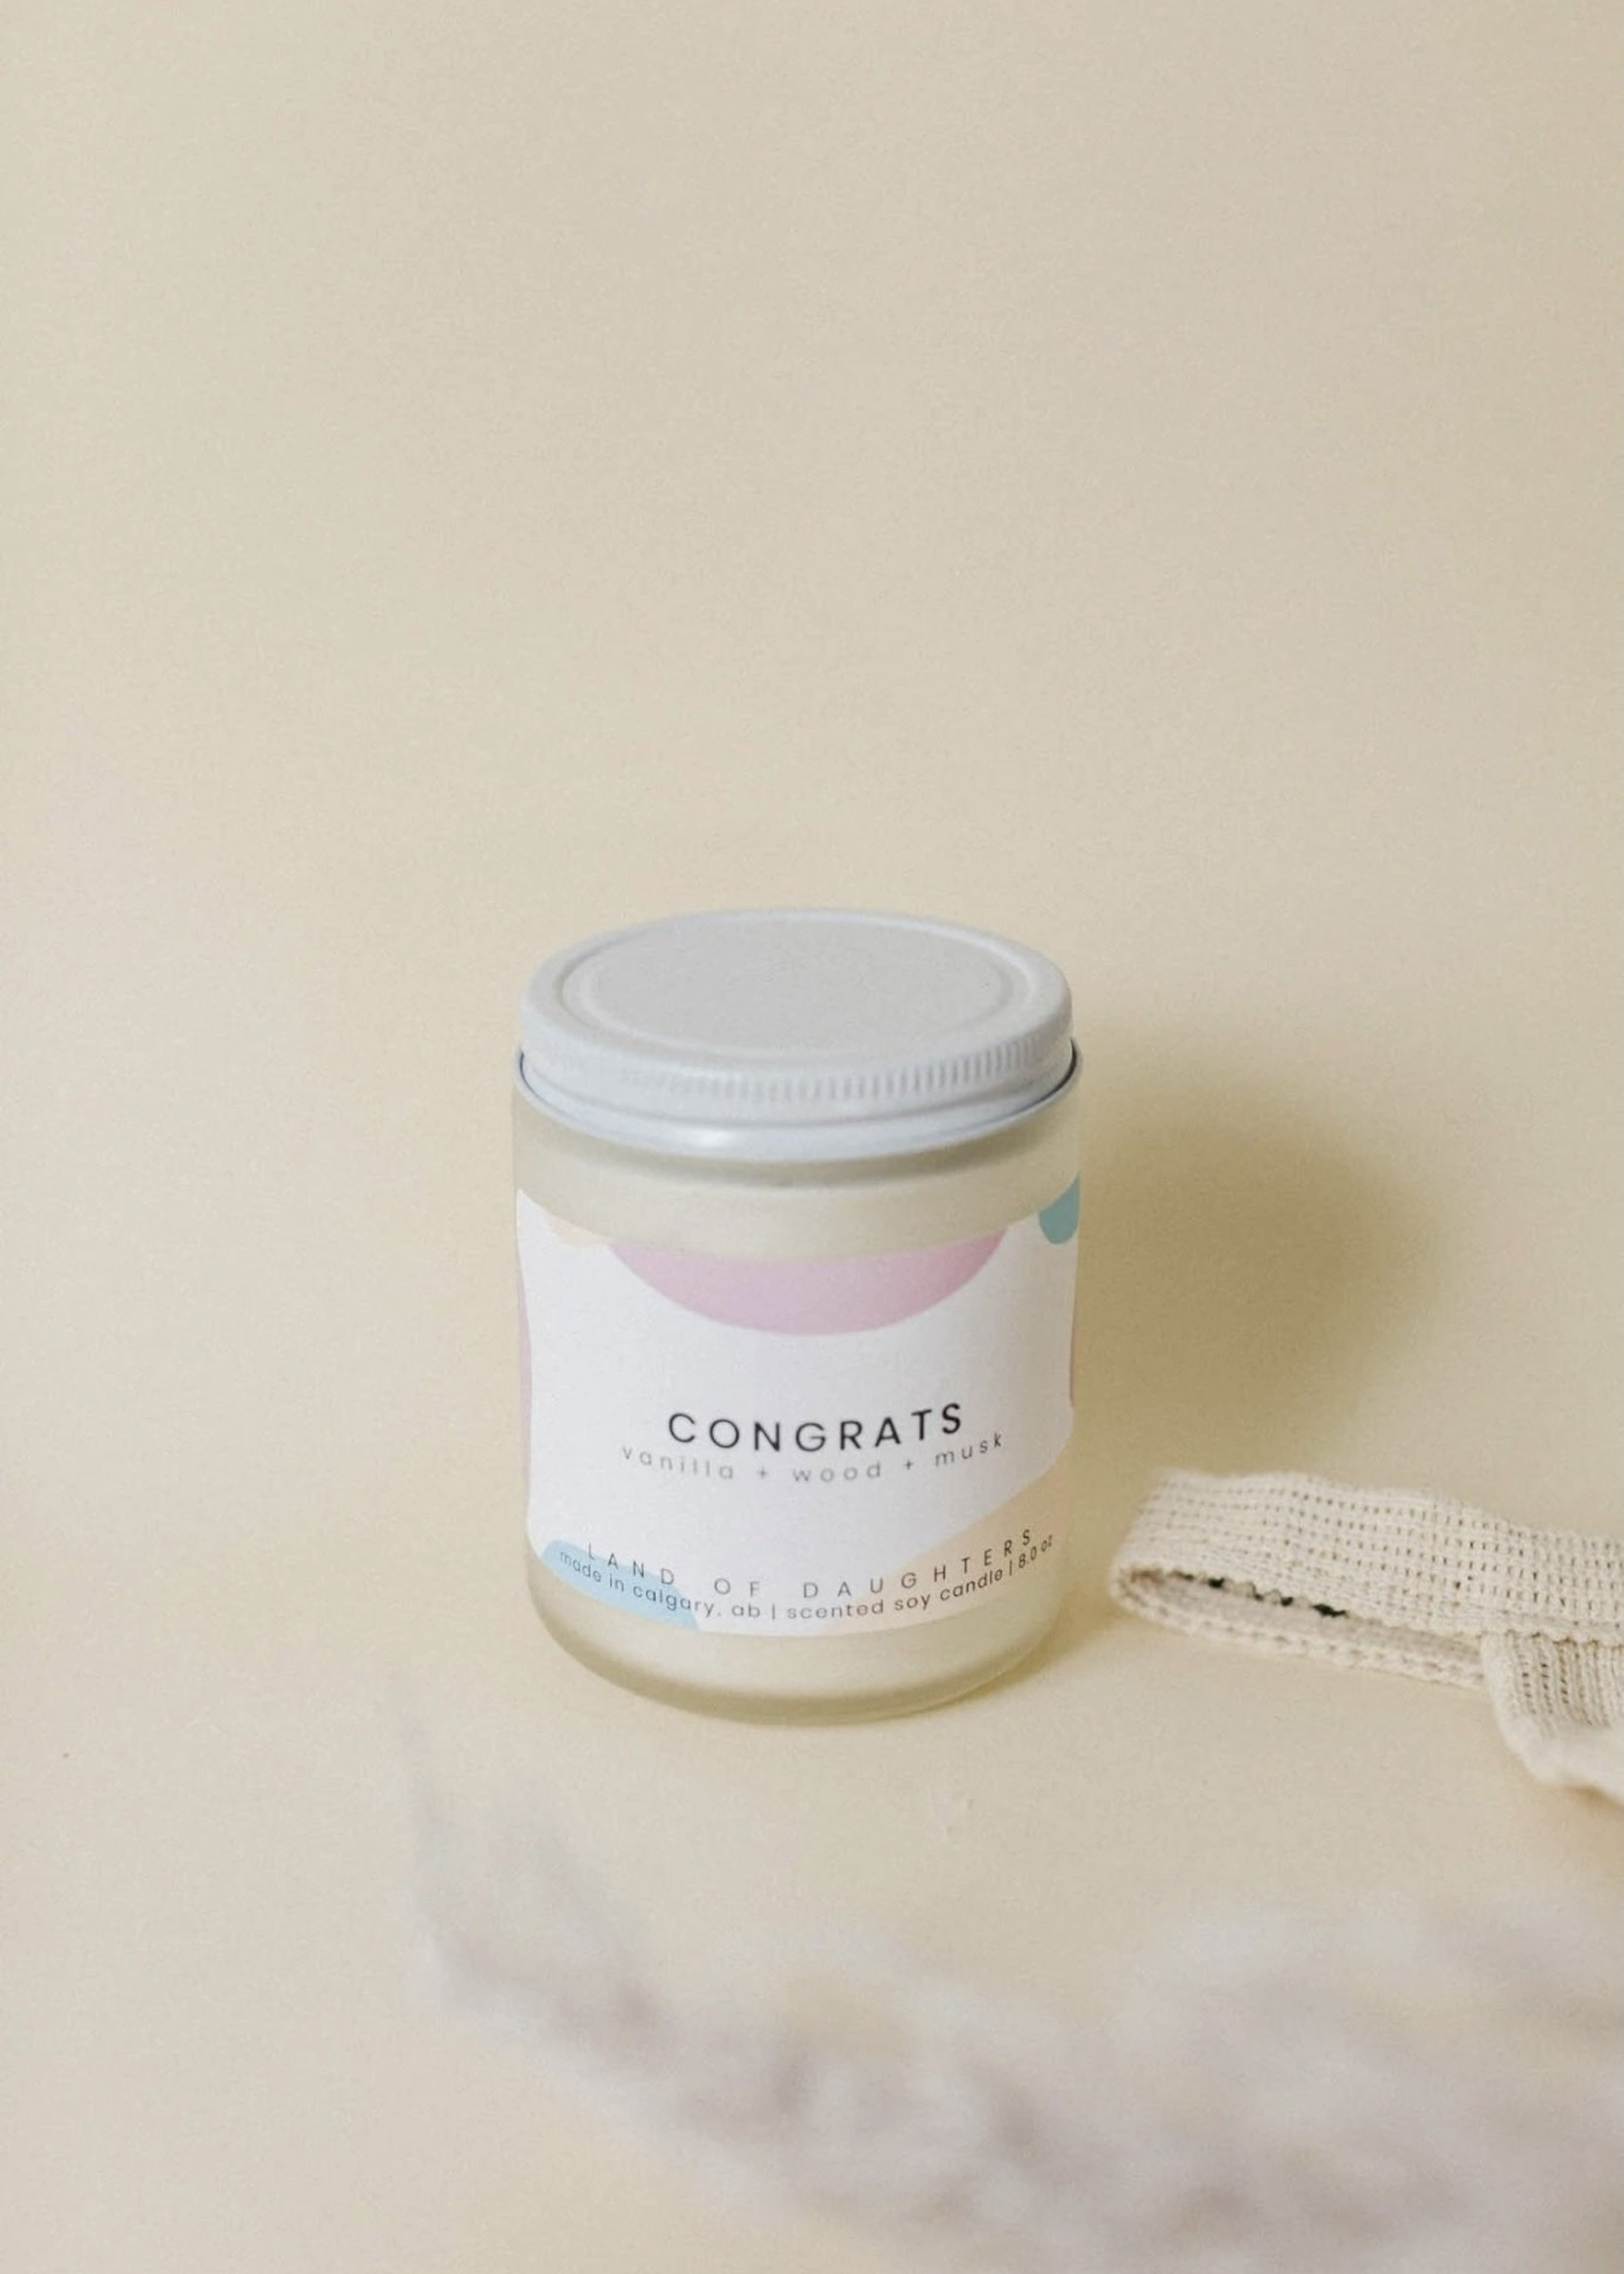 LAND of DAUGHTERS Congrats CANDLE